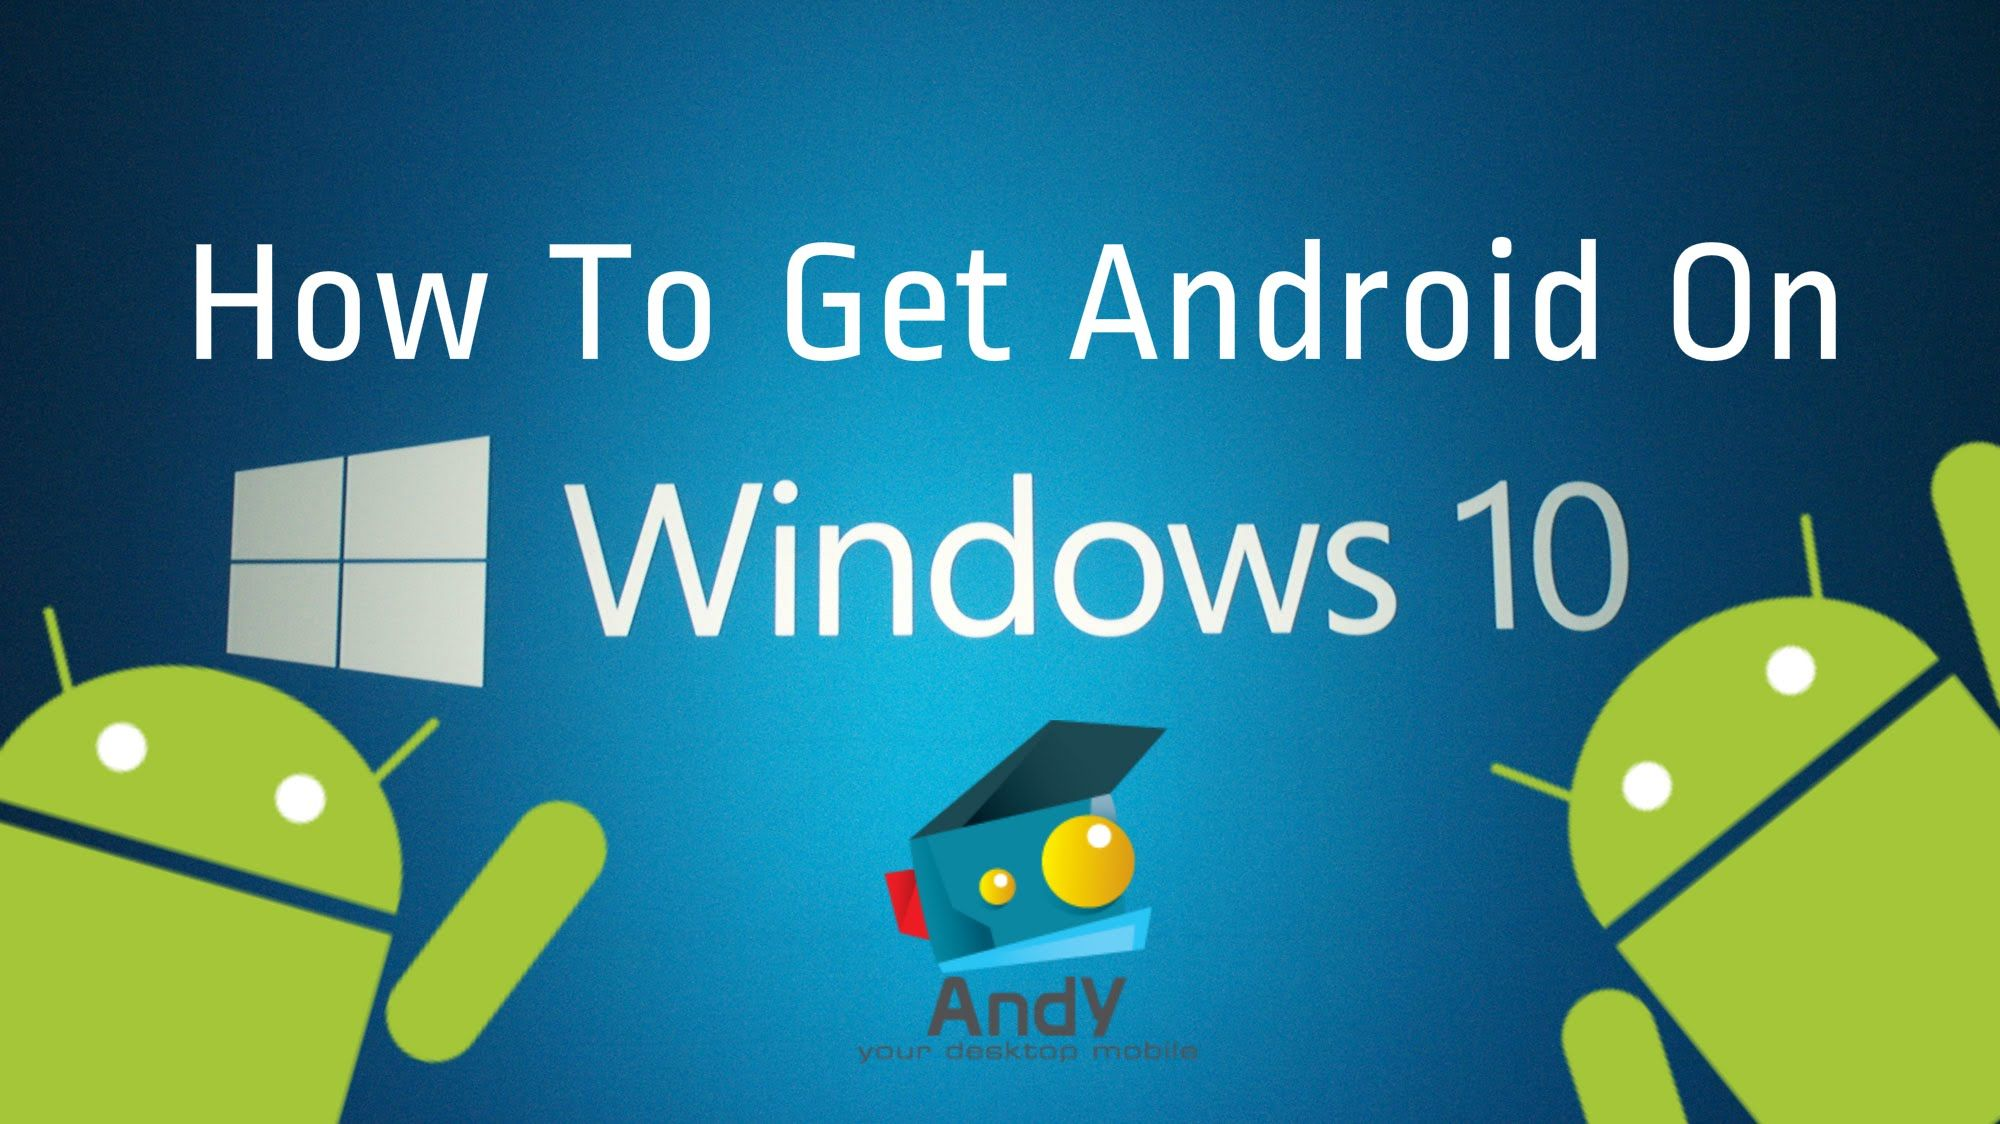 How To Get Android Emulator On Windows 10 (Andy) Android